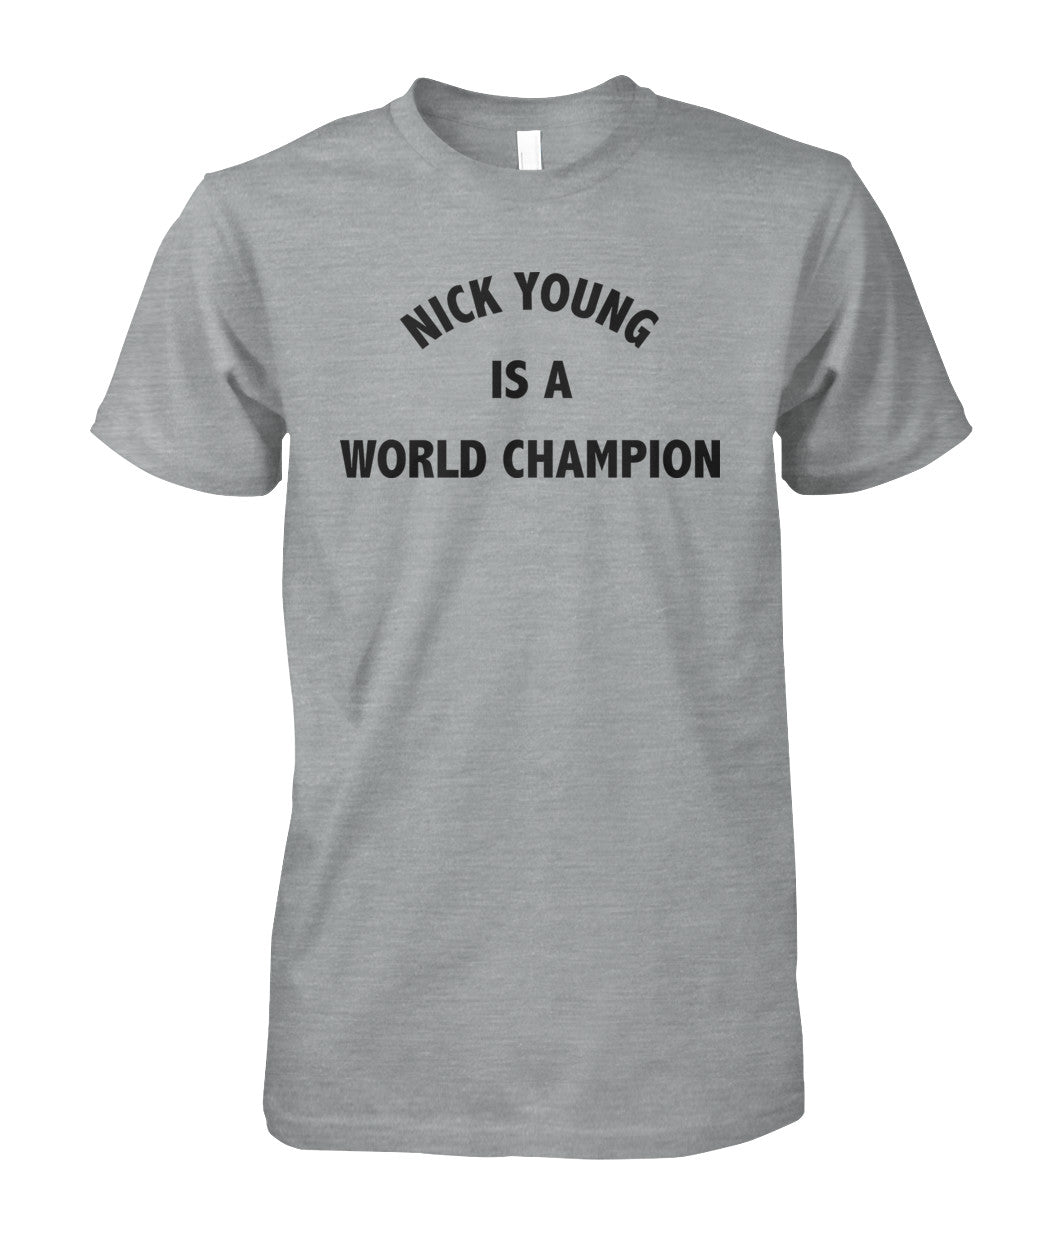 NICK YOUNG IS A WORLD CHAMPION